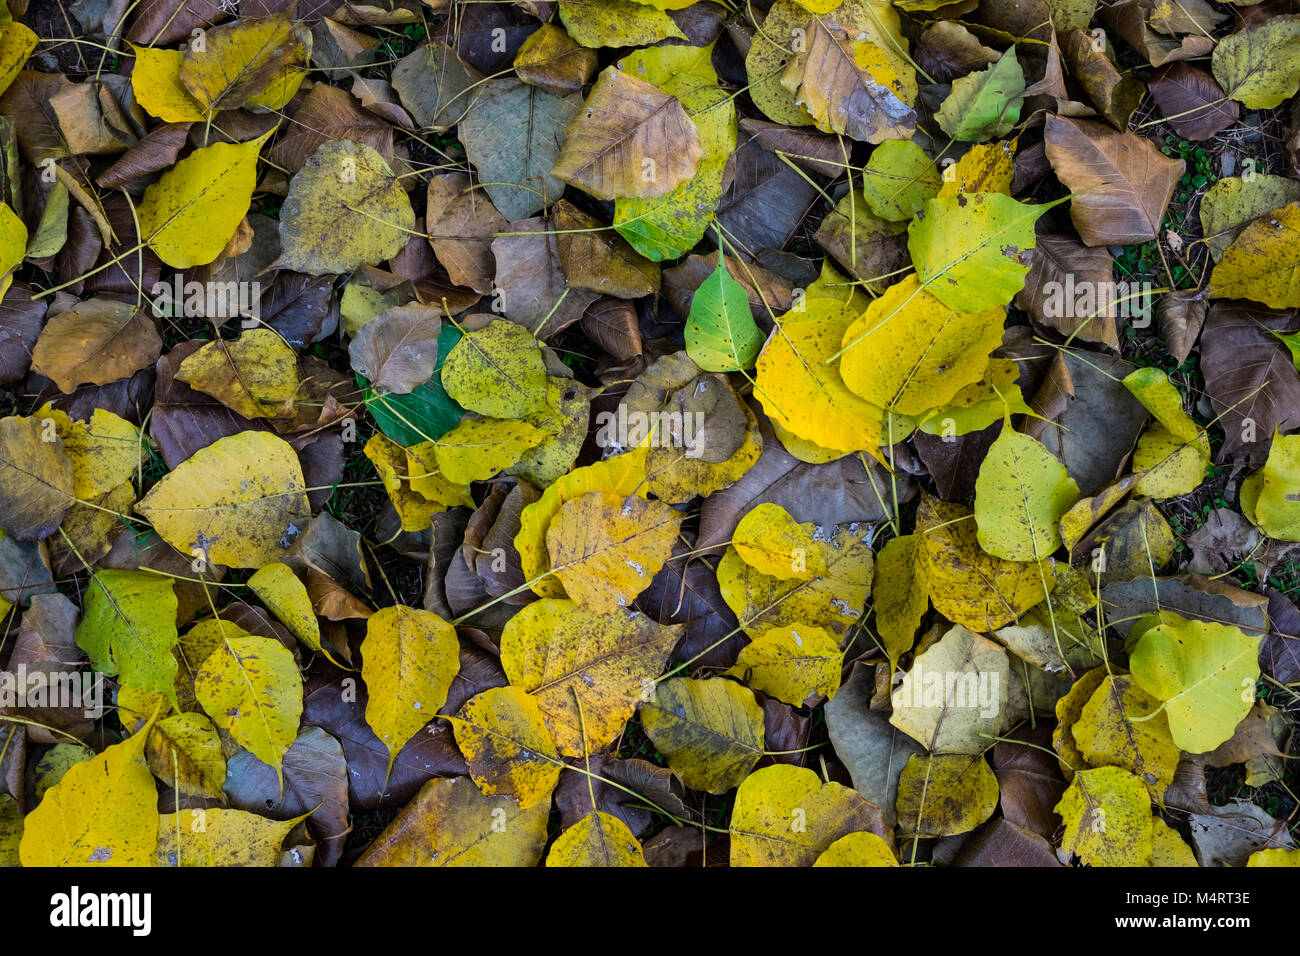 Dry brown and yellow leaves on ground under the big tree in public park, selective focus. - Stock Image